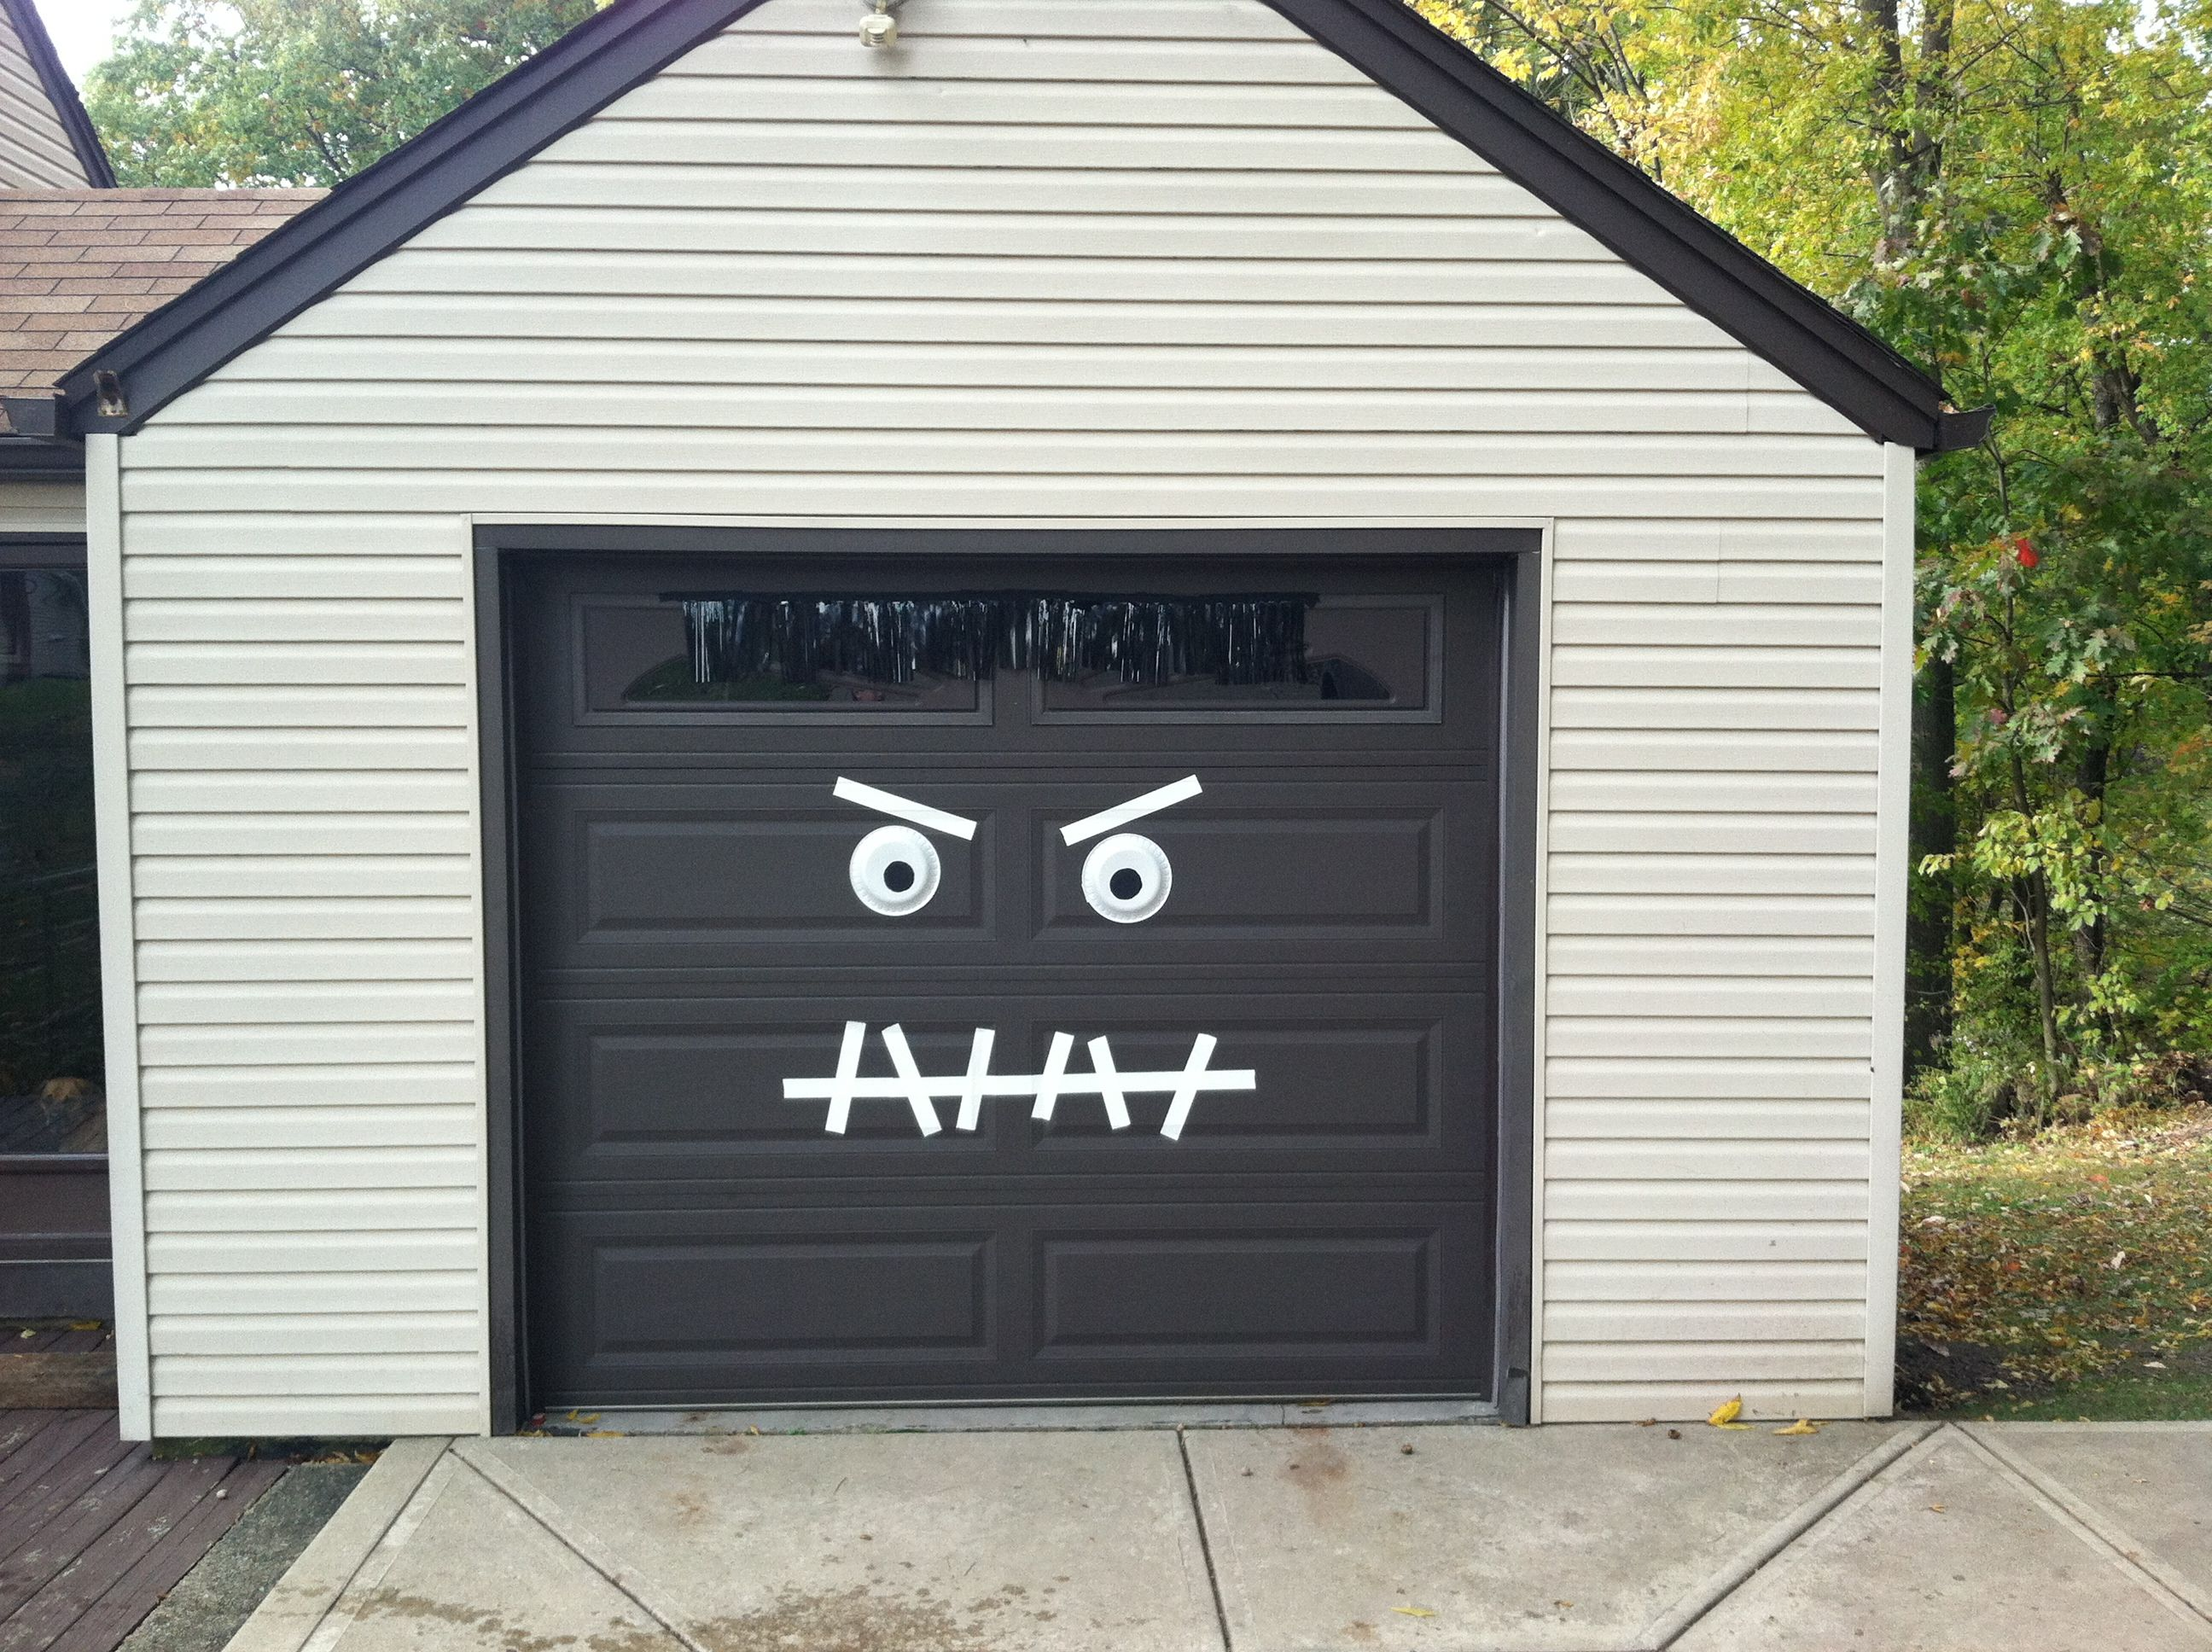 pictures home door over unique an with fixed garage doors luxury slides kits improvement of decorations right barn photos menards side outdoor shed sliding white